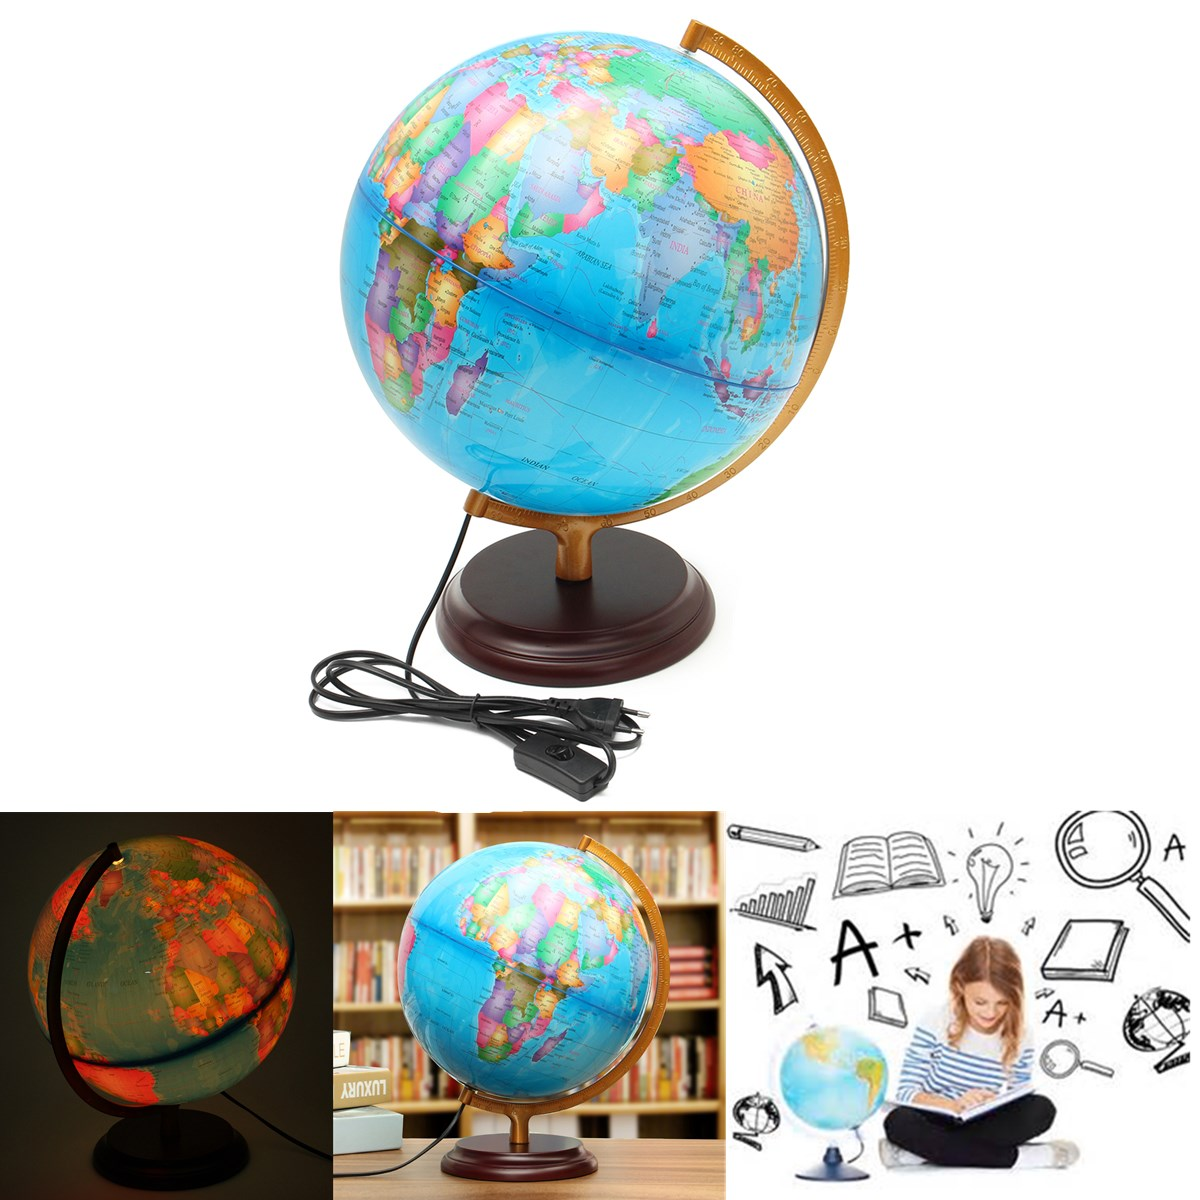 40cm LED Earth Globe World Map With Stand Geography Educational Toy Home Office Desktop Ornament Santa Birthday Kids Gift new led world map world globe rotating swivel map of earth geography globe figurines ornaments birthday gift home office decor